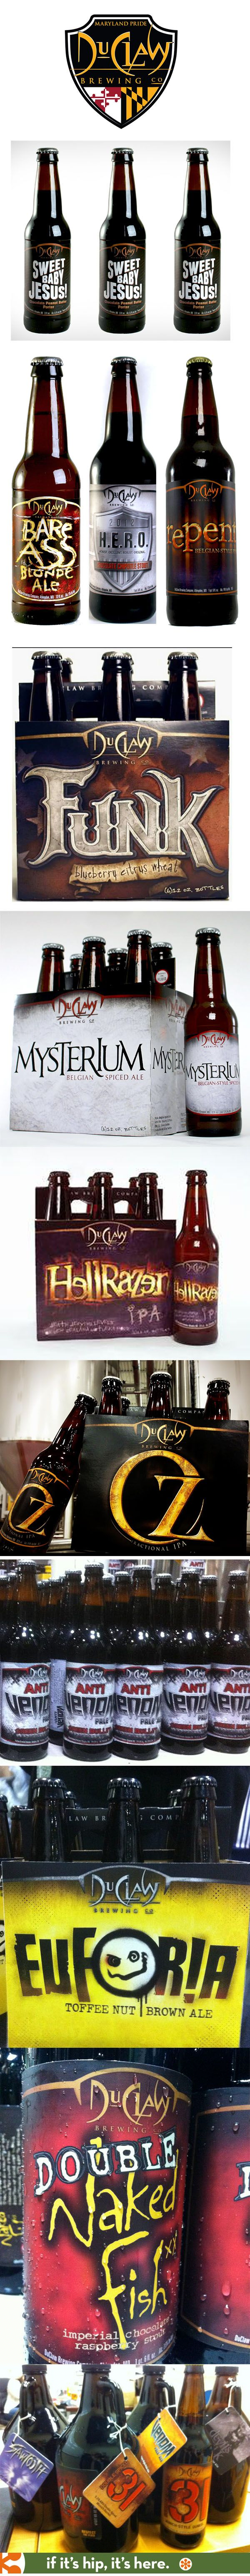 Some of the fun beer names, labels and packaging from DuClaw.